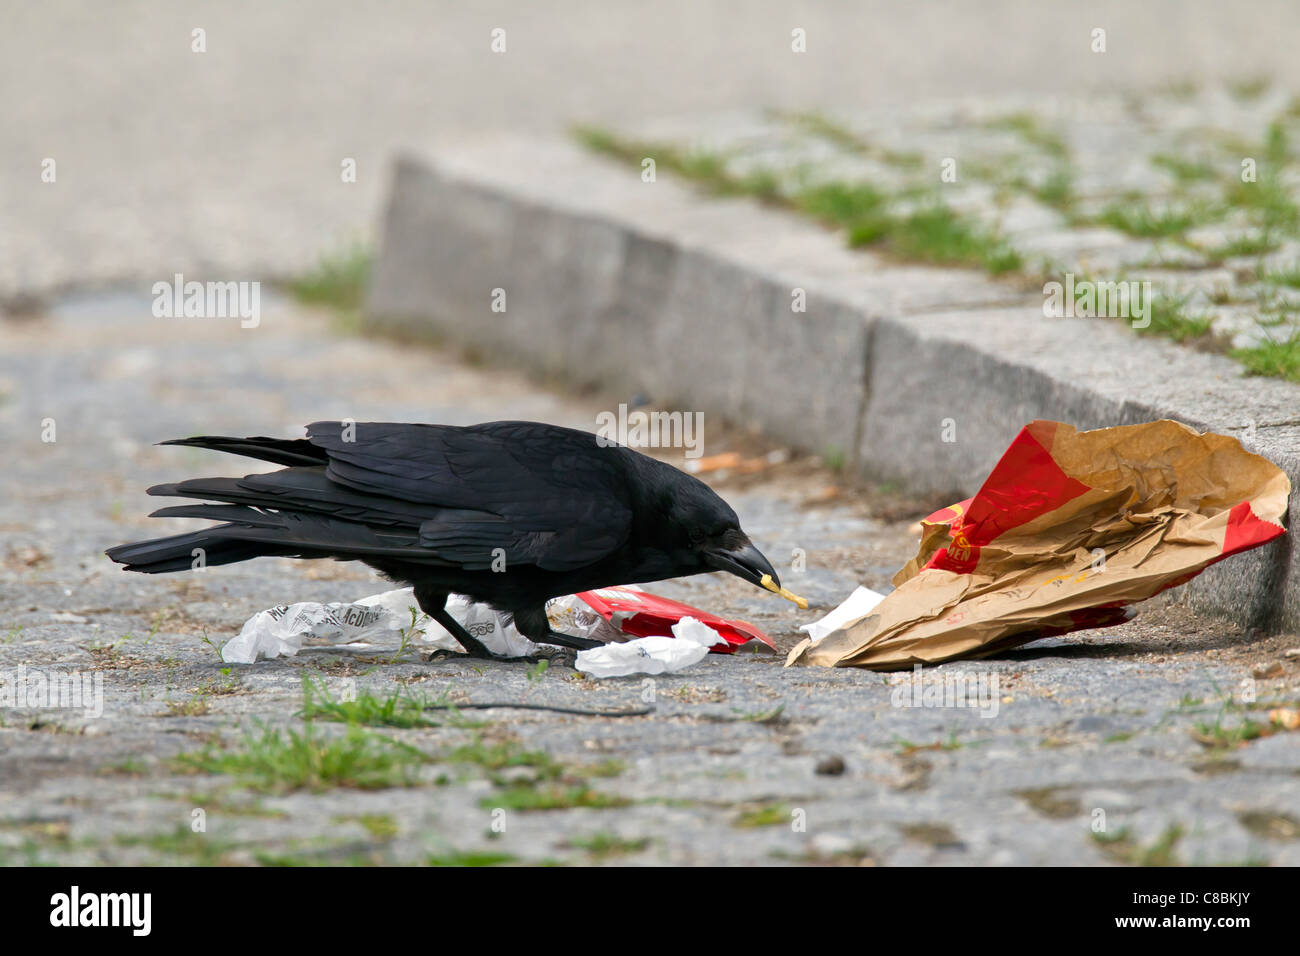 Carrion crow (Corvus corone) scavenging for food in garbage on street, Germany - Stock Image